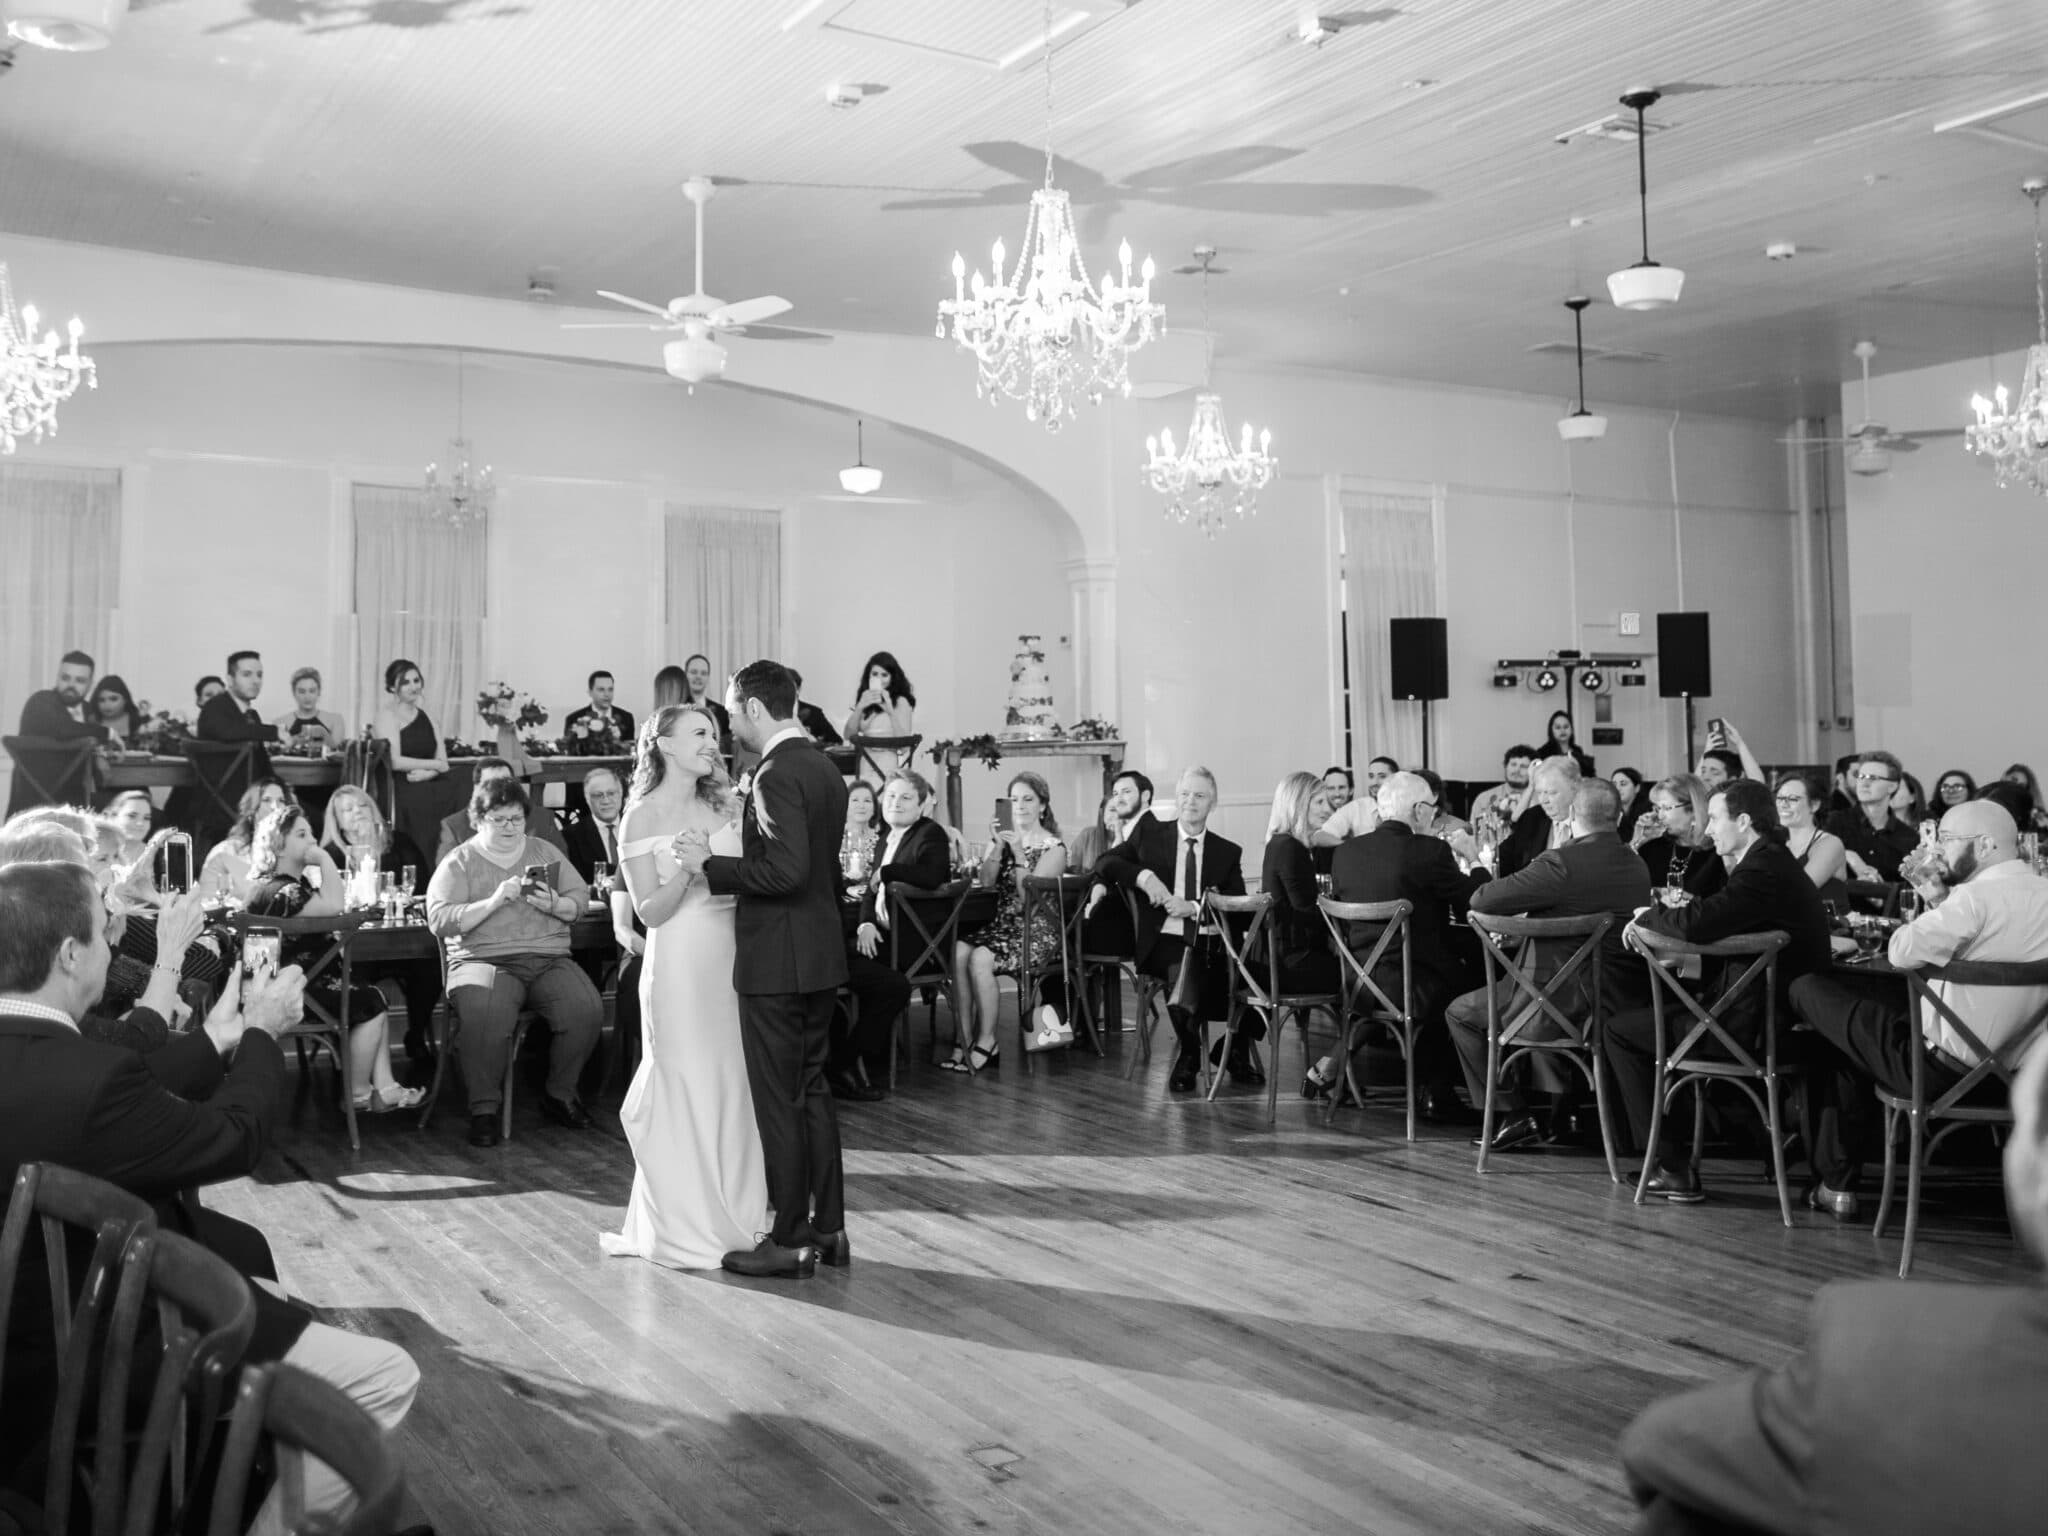 Venue 1902 at Preservation Hall, bride and groom first dance, in black and white